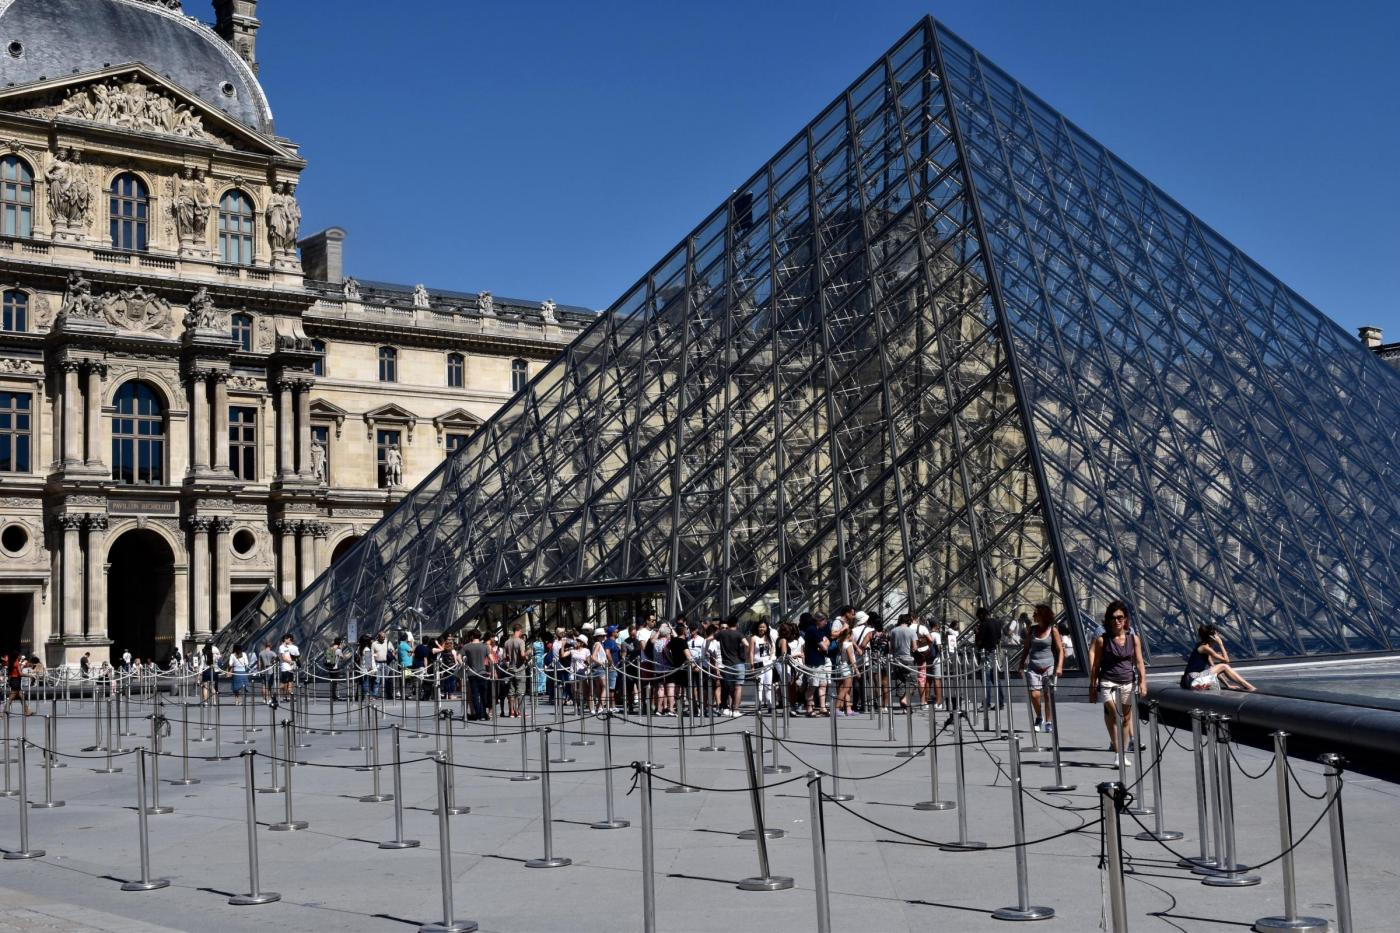 FRANCE PARIS TOURISTS DECLINE